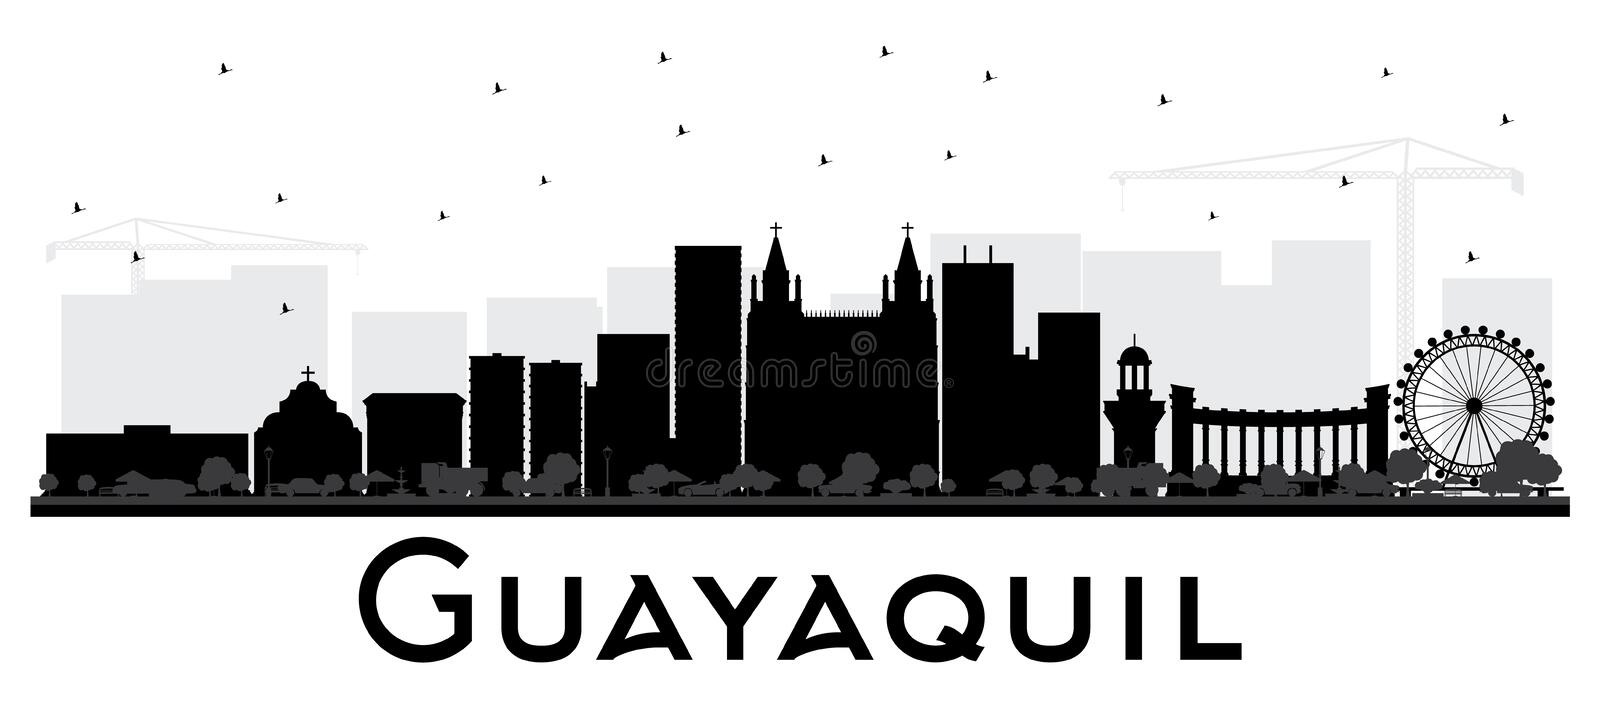 Guayaquil Ecuador City Skyline with Black Buildings Isolated on. White. Vector Illustration. Business Travel and Tourism Concept with Historic Architecture stock illustration